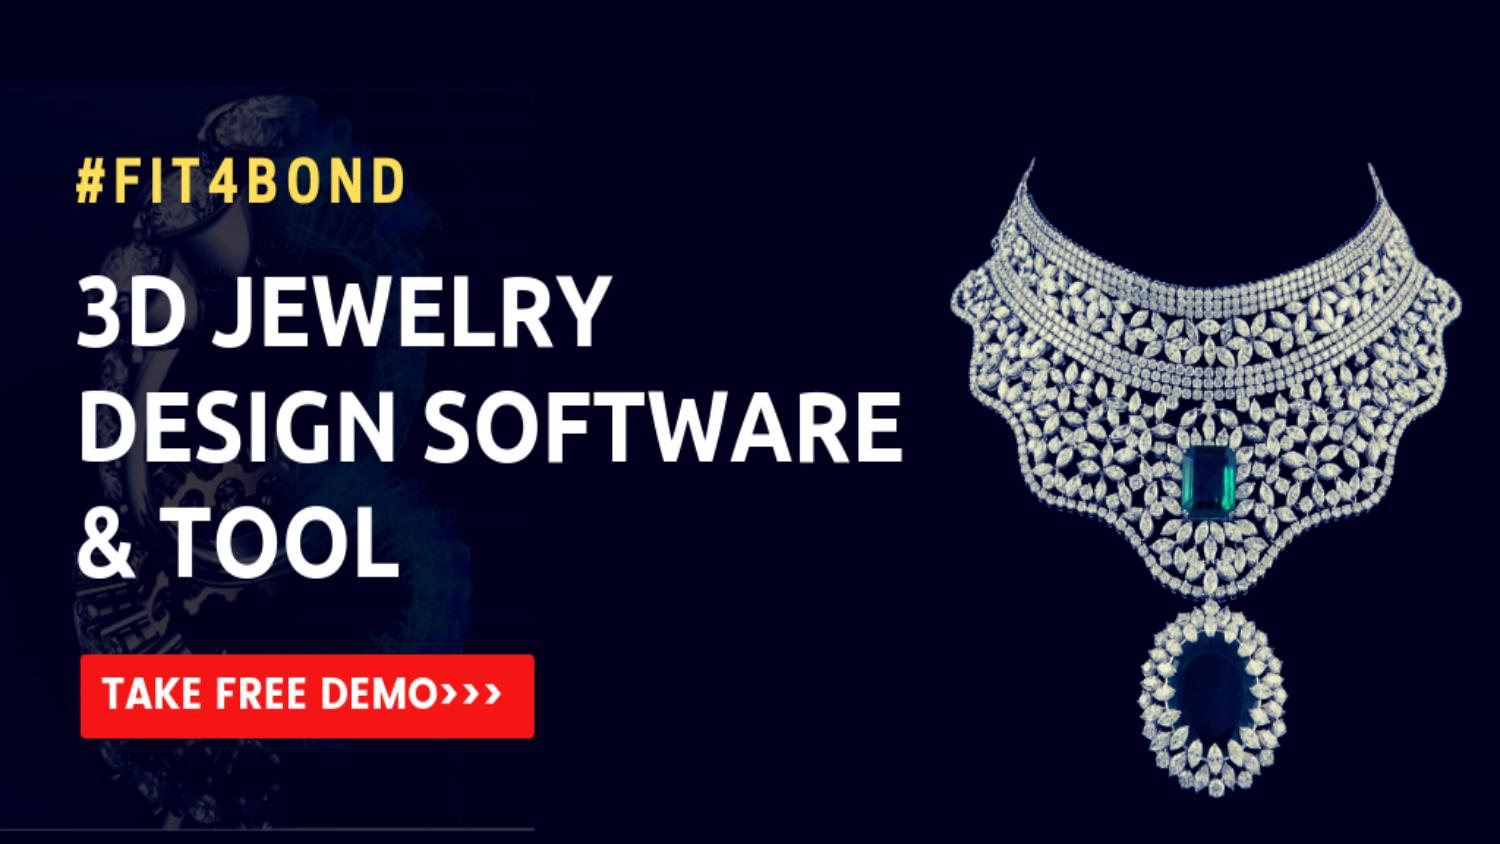 Fit4bond 3d Jewelry Design Software Tool By Angel Issuu